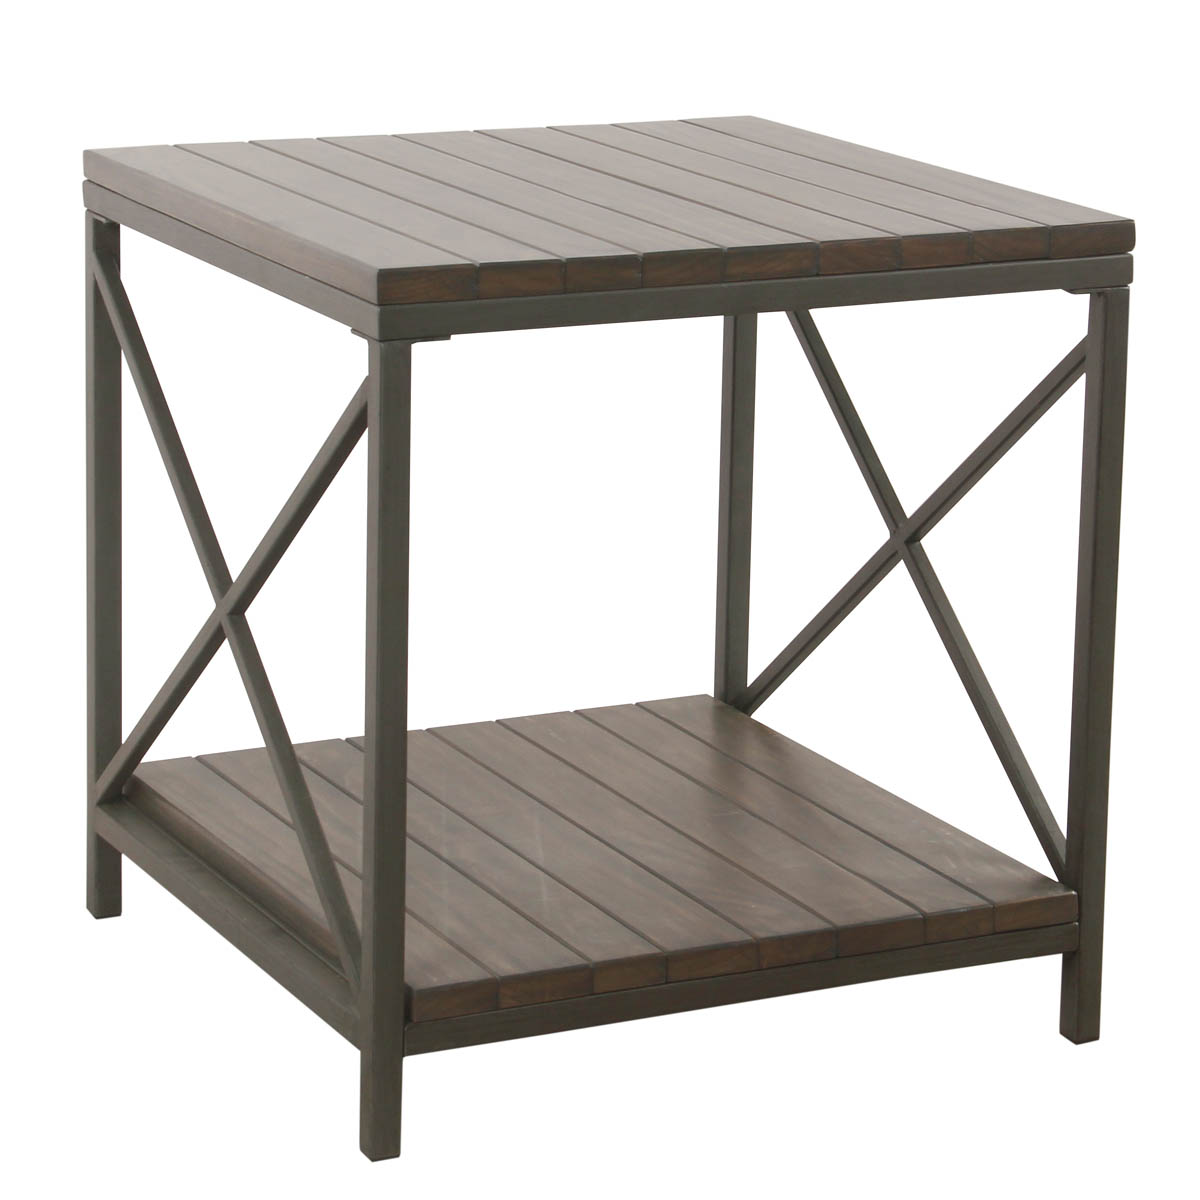 oak furniture side tables probably outrageous amazing gray wood homepop and metal accent table patina front end ikea storage baskets inch legs white gold runner fine corner